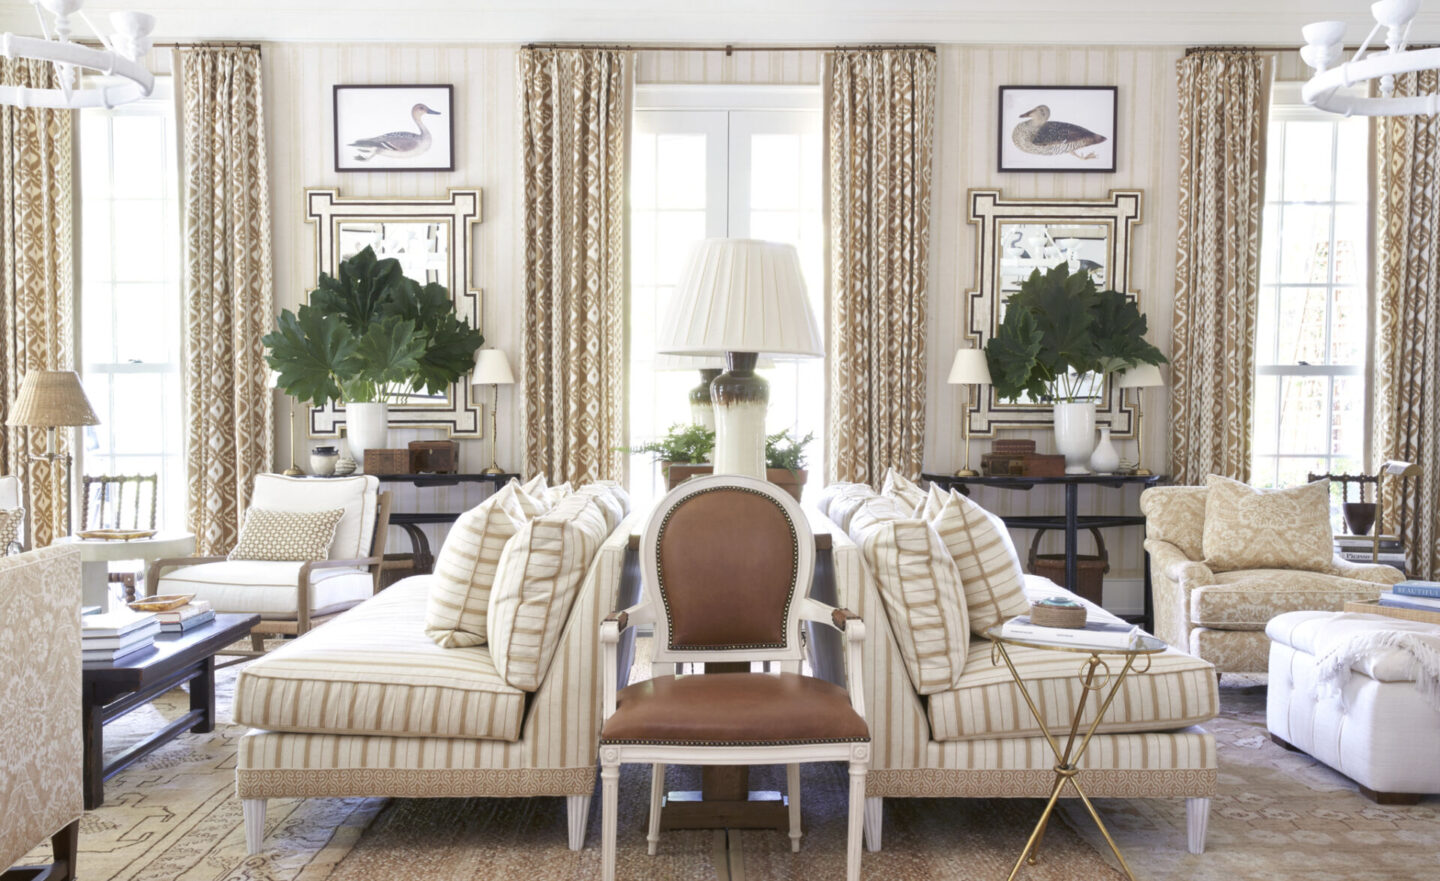 Glorious all American classic interior design by Mark Sikes from MORE BEAUTIFUL - see more on Hello Lovely Studio. #marksikes #morebeautiful #interiordesign #classicstyle #traditionalstyle